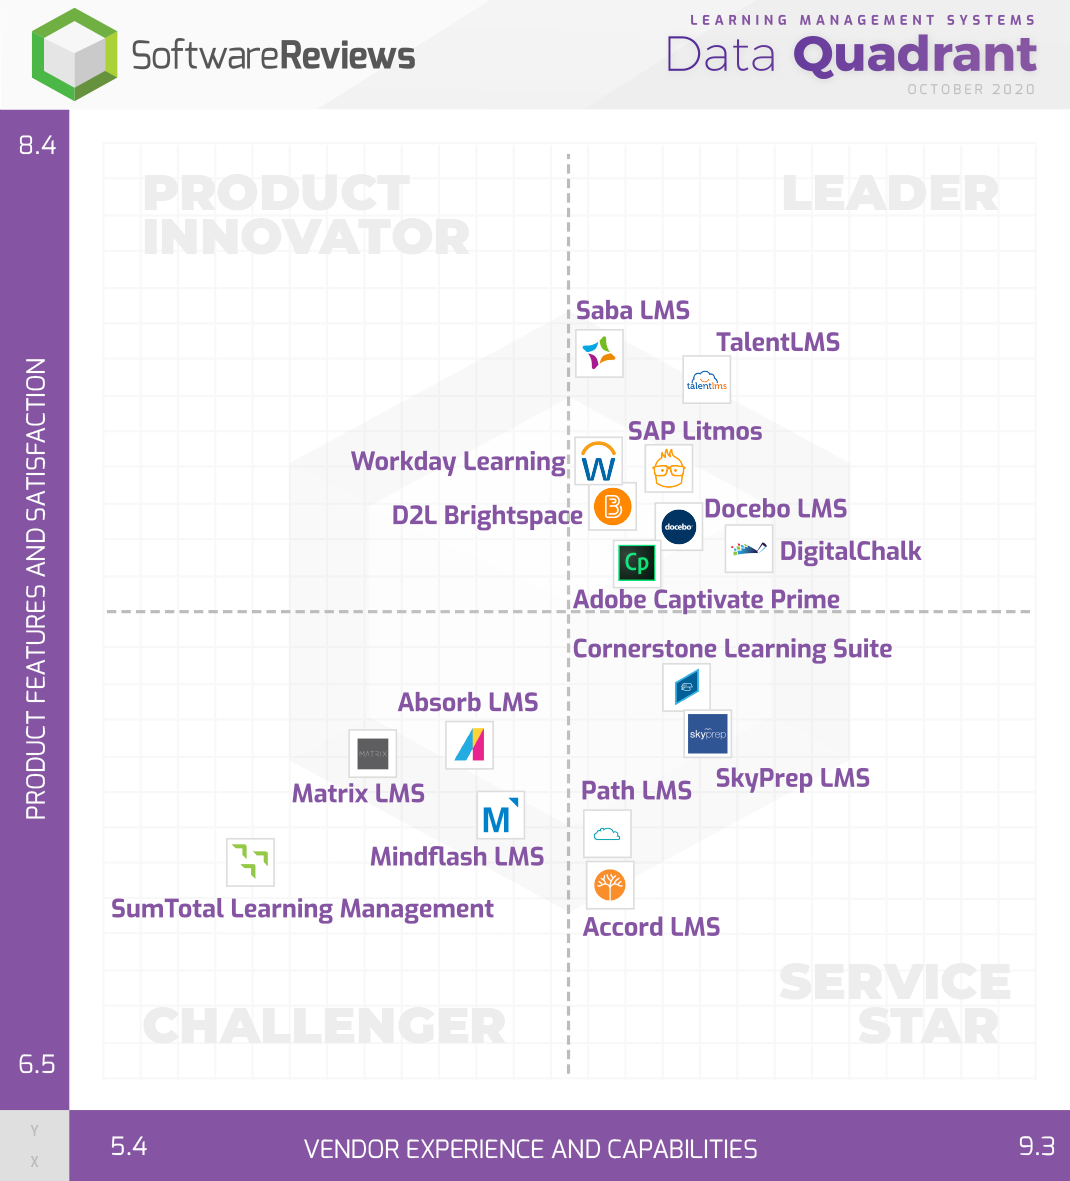 Learning Management Systems Data Quadrant